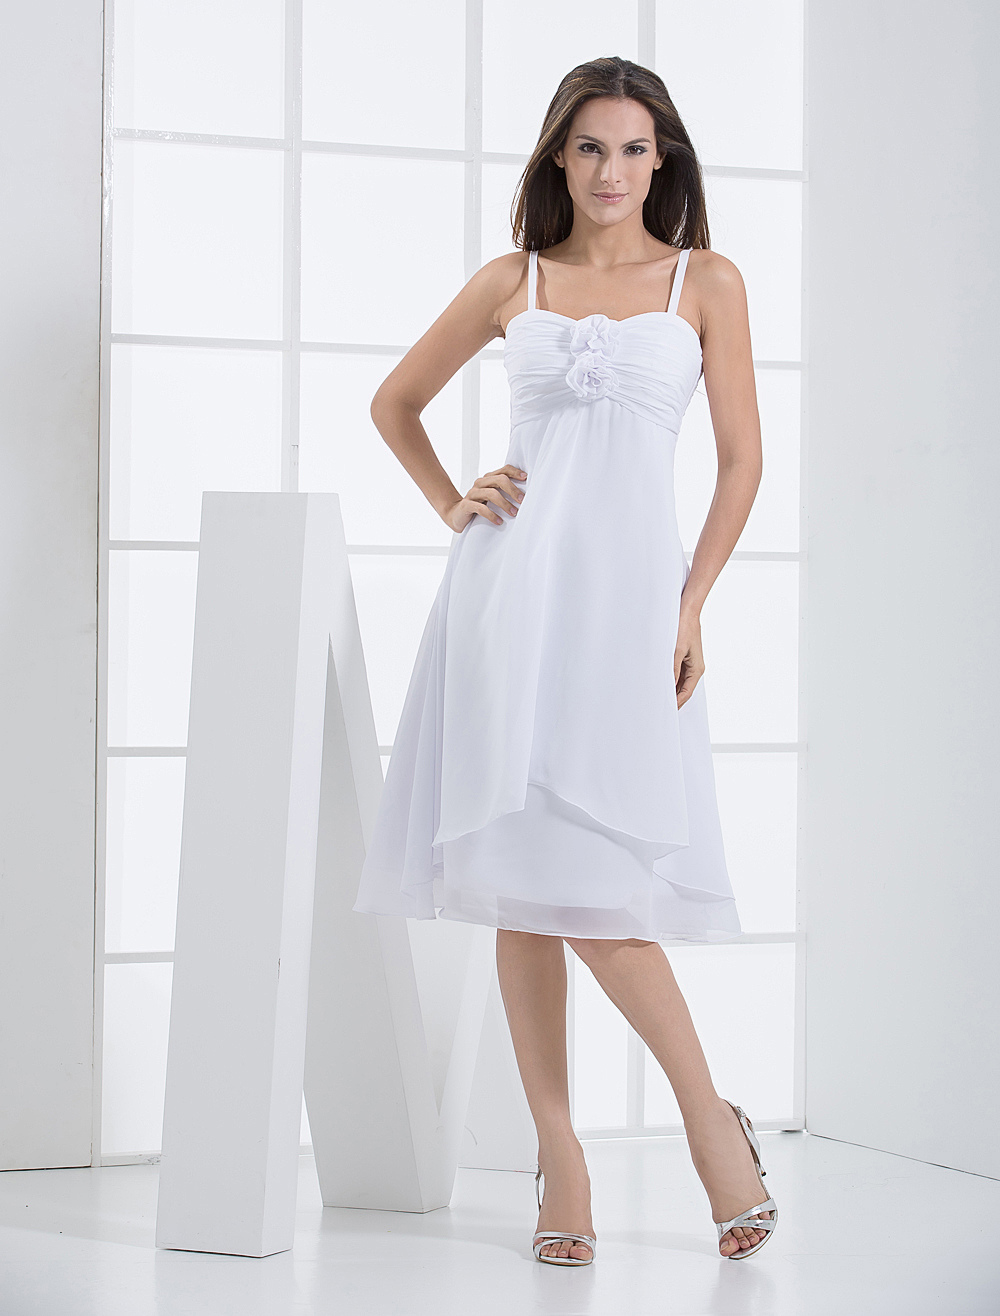 Wonderful White A-line Shank Length Chiffon Bridesmaids Dress